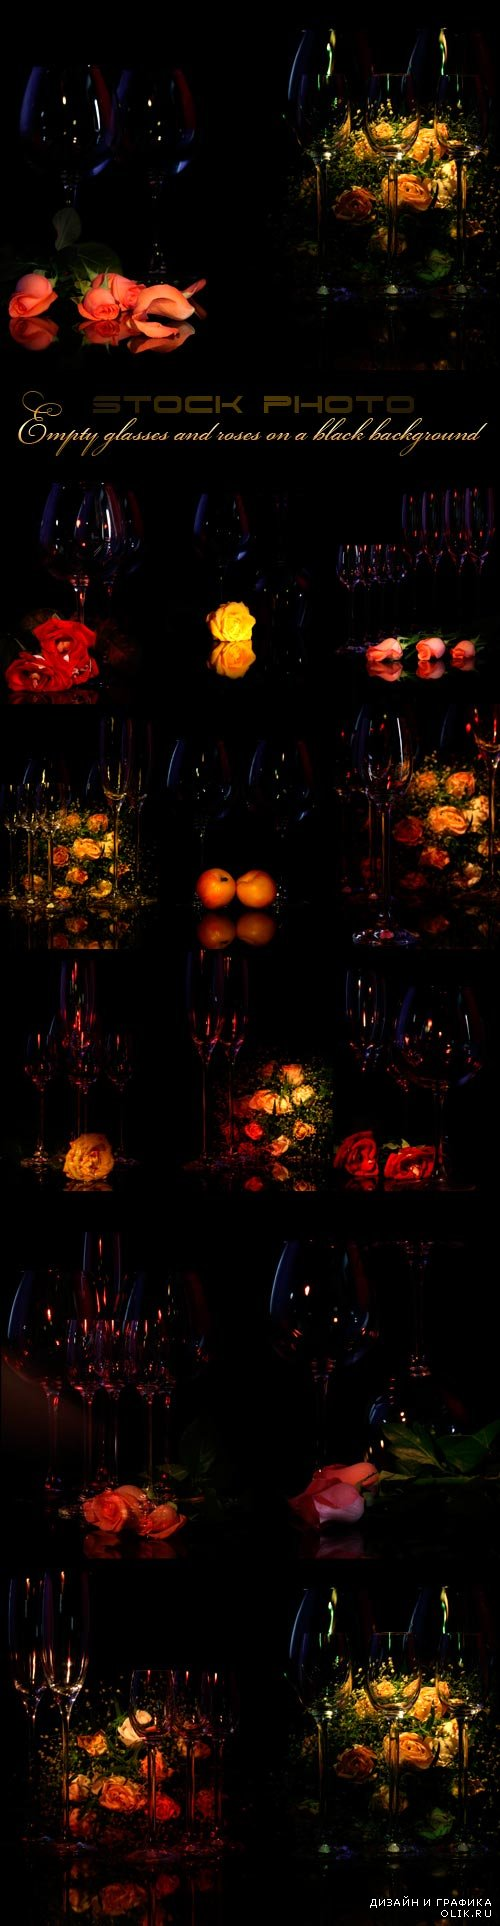 Empty glasses and roses on a black background